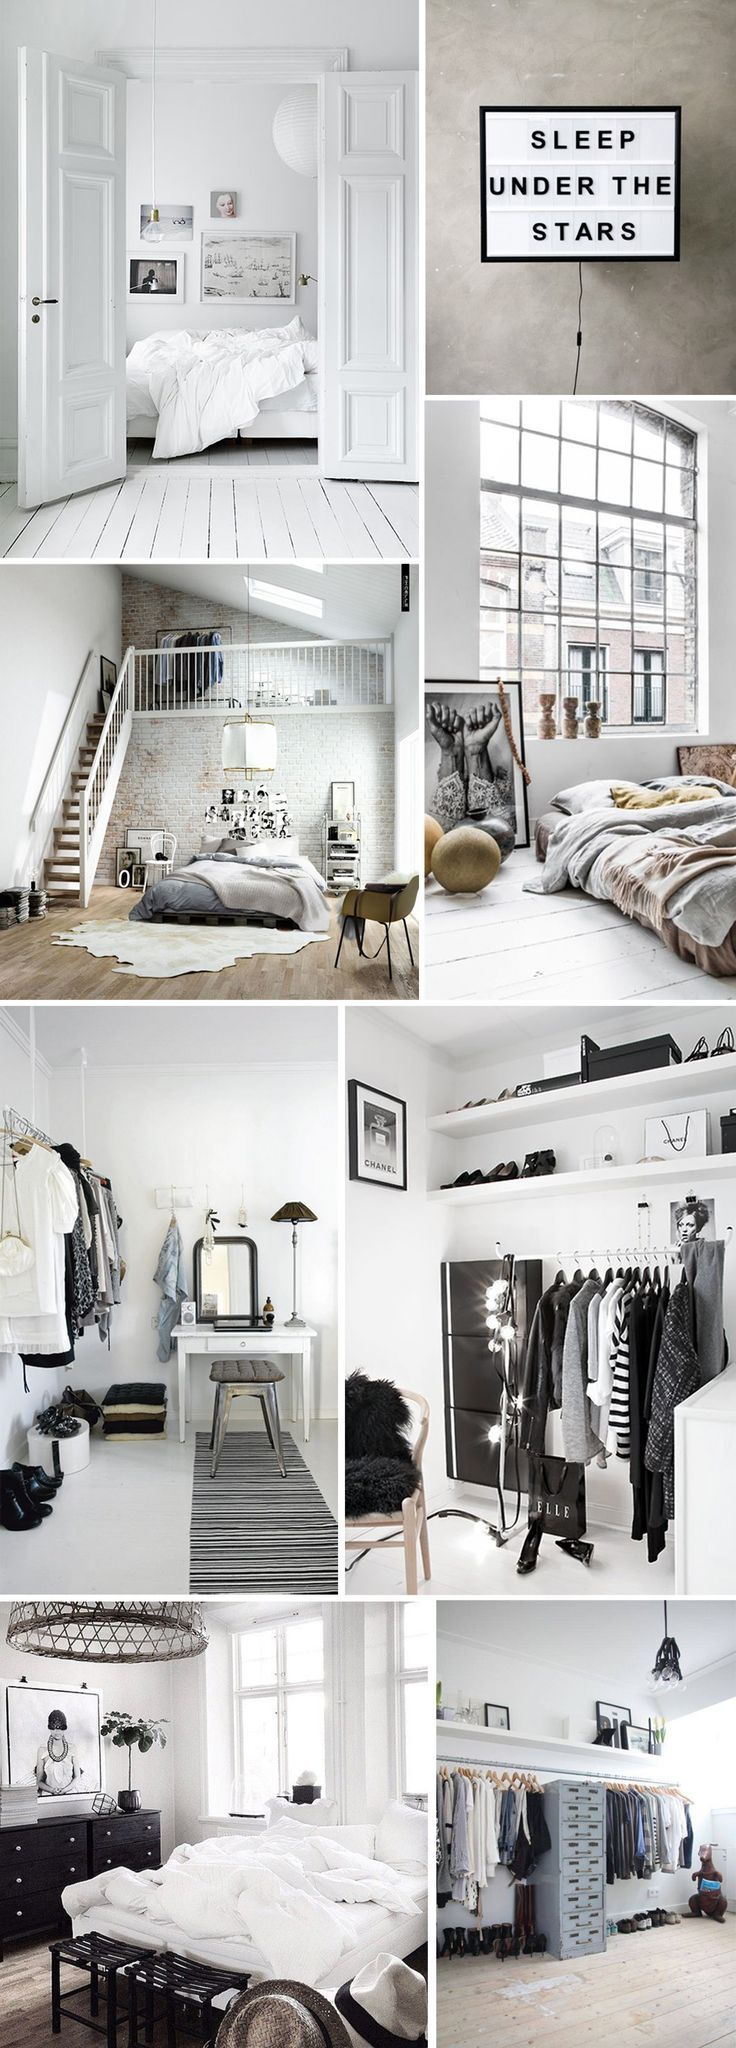 White home spaces